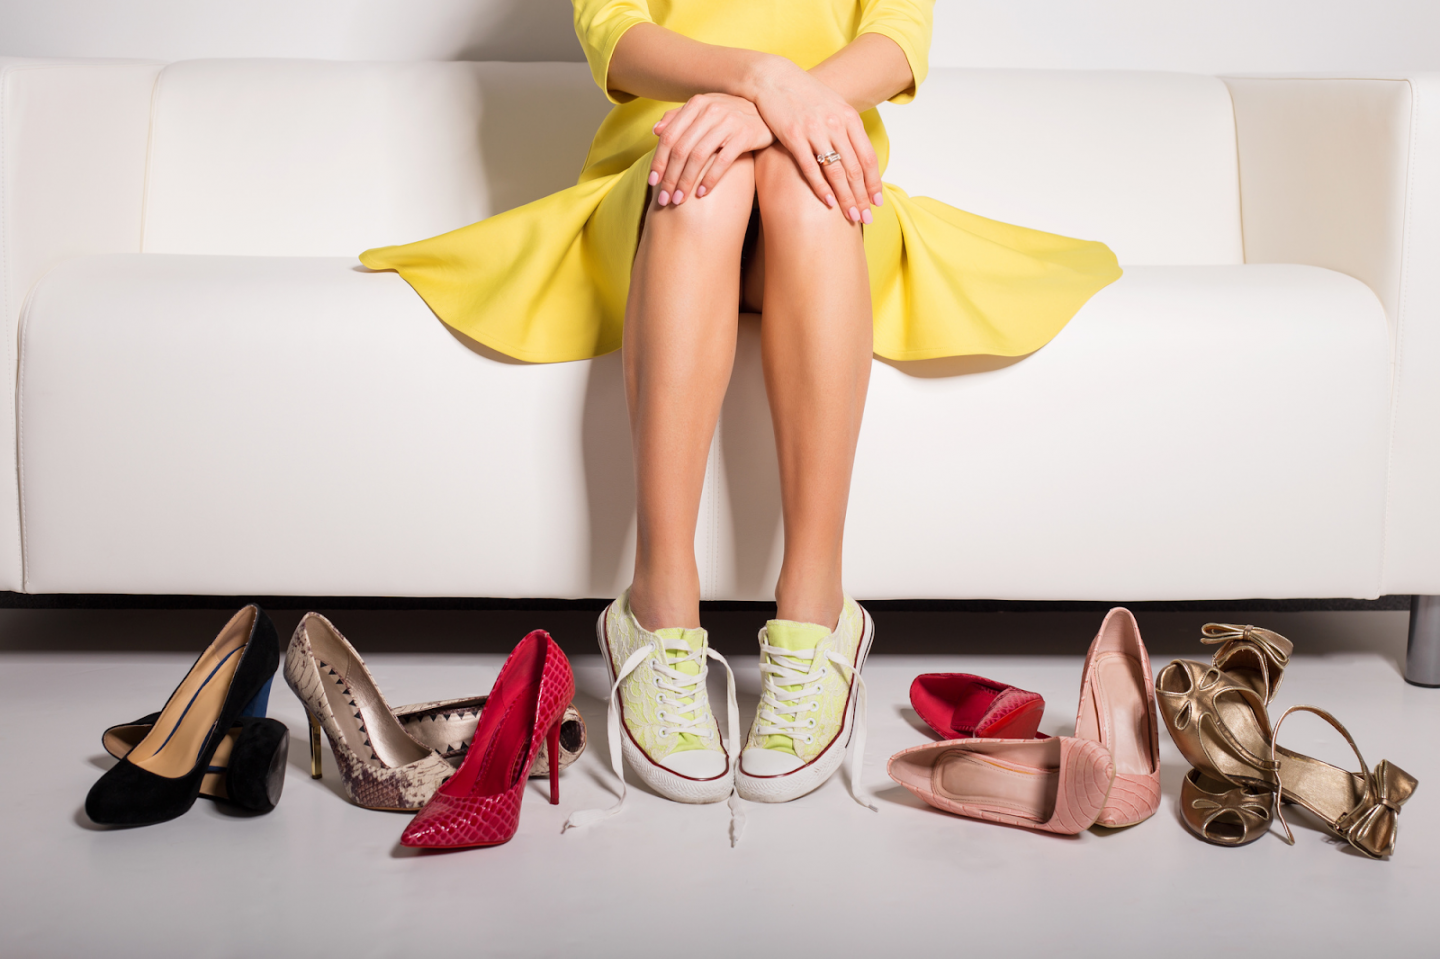 WHAT TO WEAR TO BRUNCH? HERE ARE 4 STYLISH SHOE TRENDS FOR THE WEEKEND OUTING